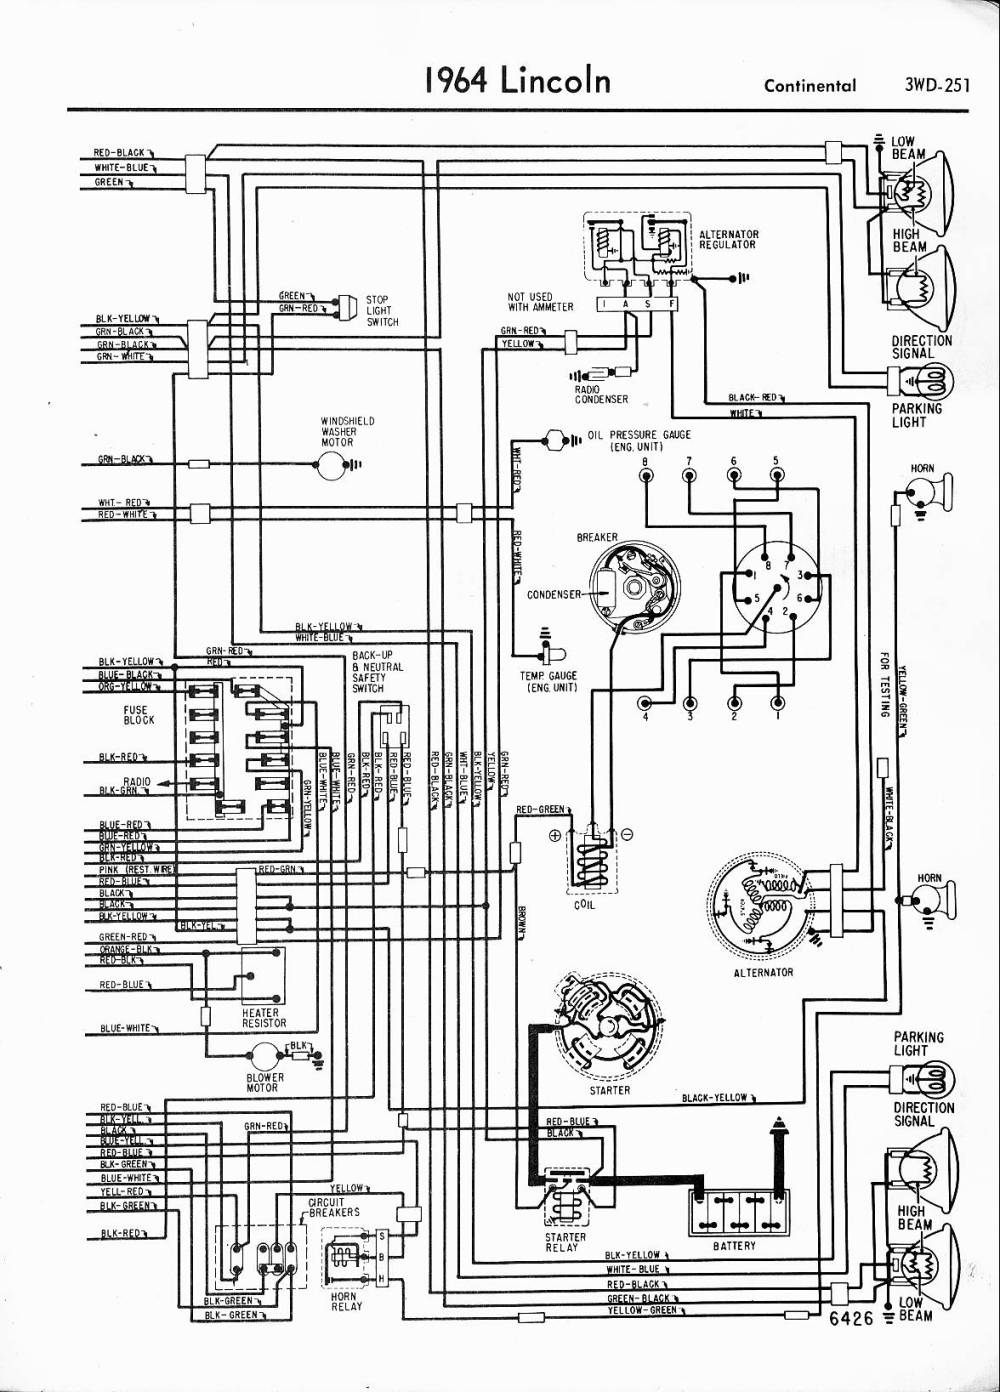 medium resolution of images of 1961 lincoln continental wiring diagram wiring diagramslincoln wiring diagrams 1957 1965 1964 lincoln right